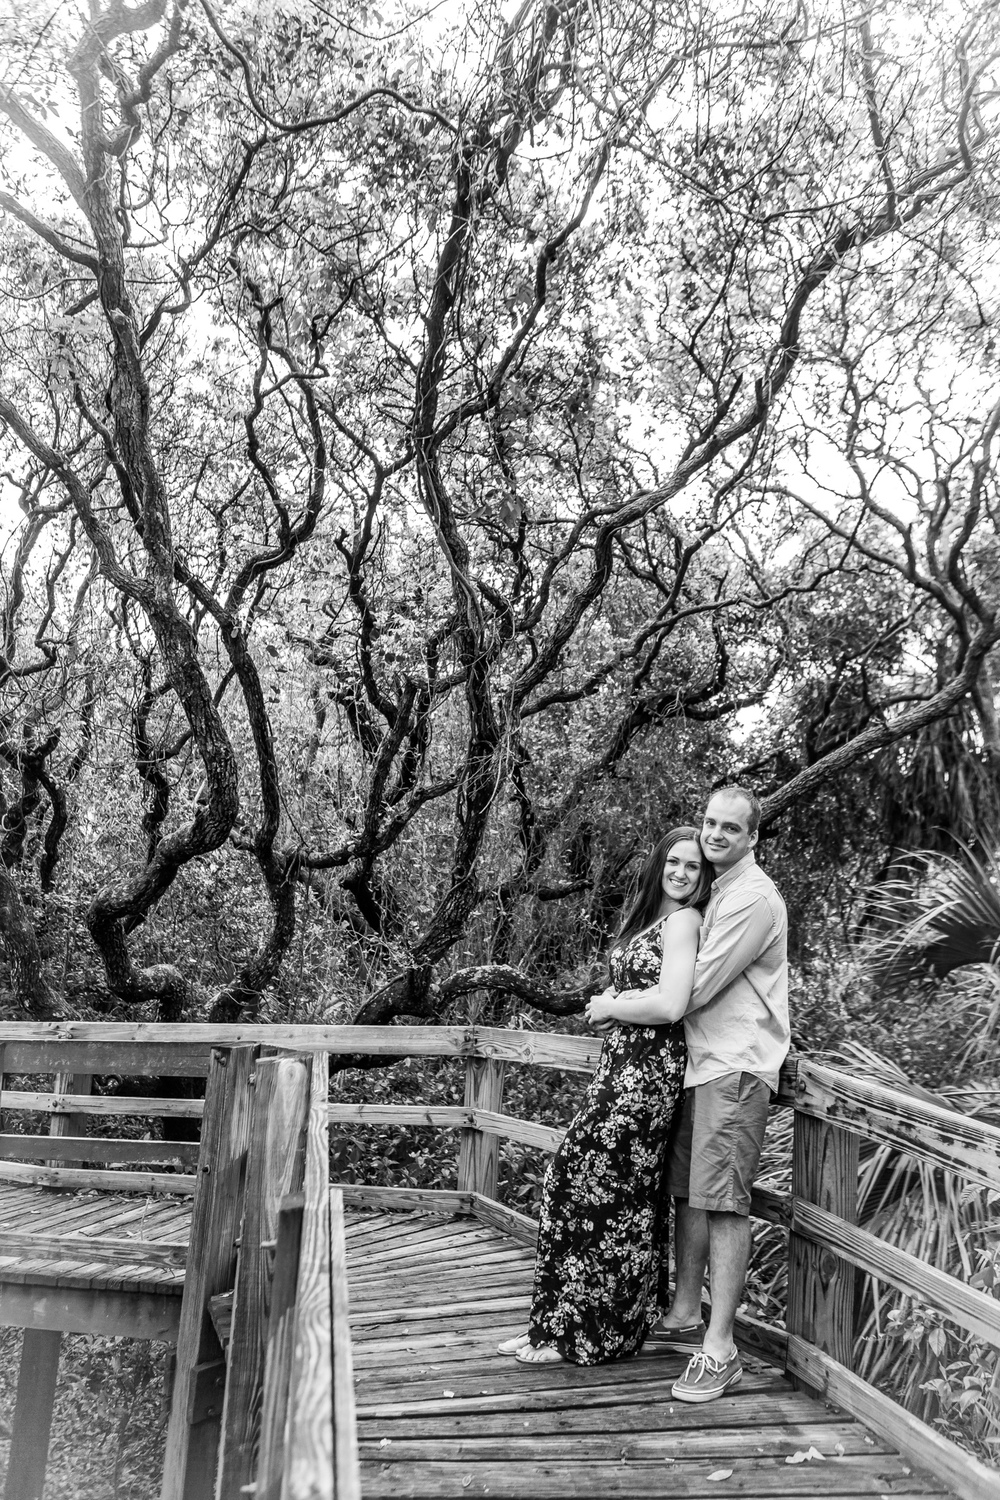 Tribe Archipelago LXC Cocoa Beach Engagement photography #LooksLikeFilm Space Coast Brevard photographer 64.jpg